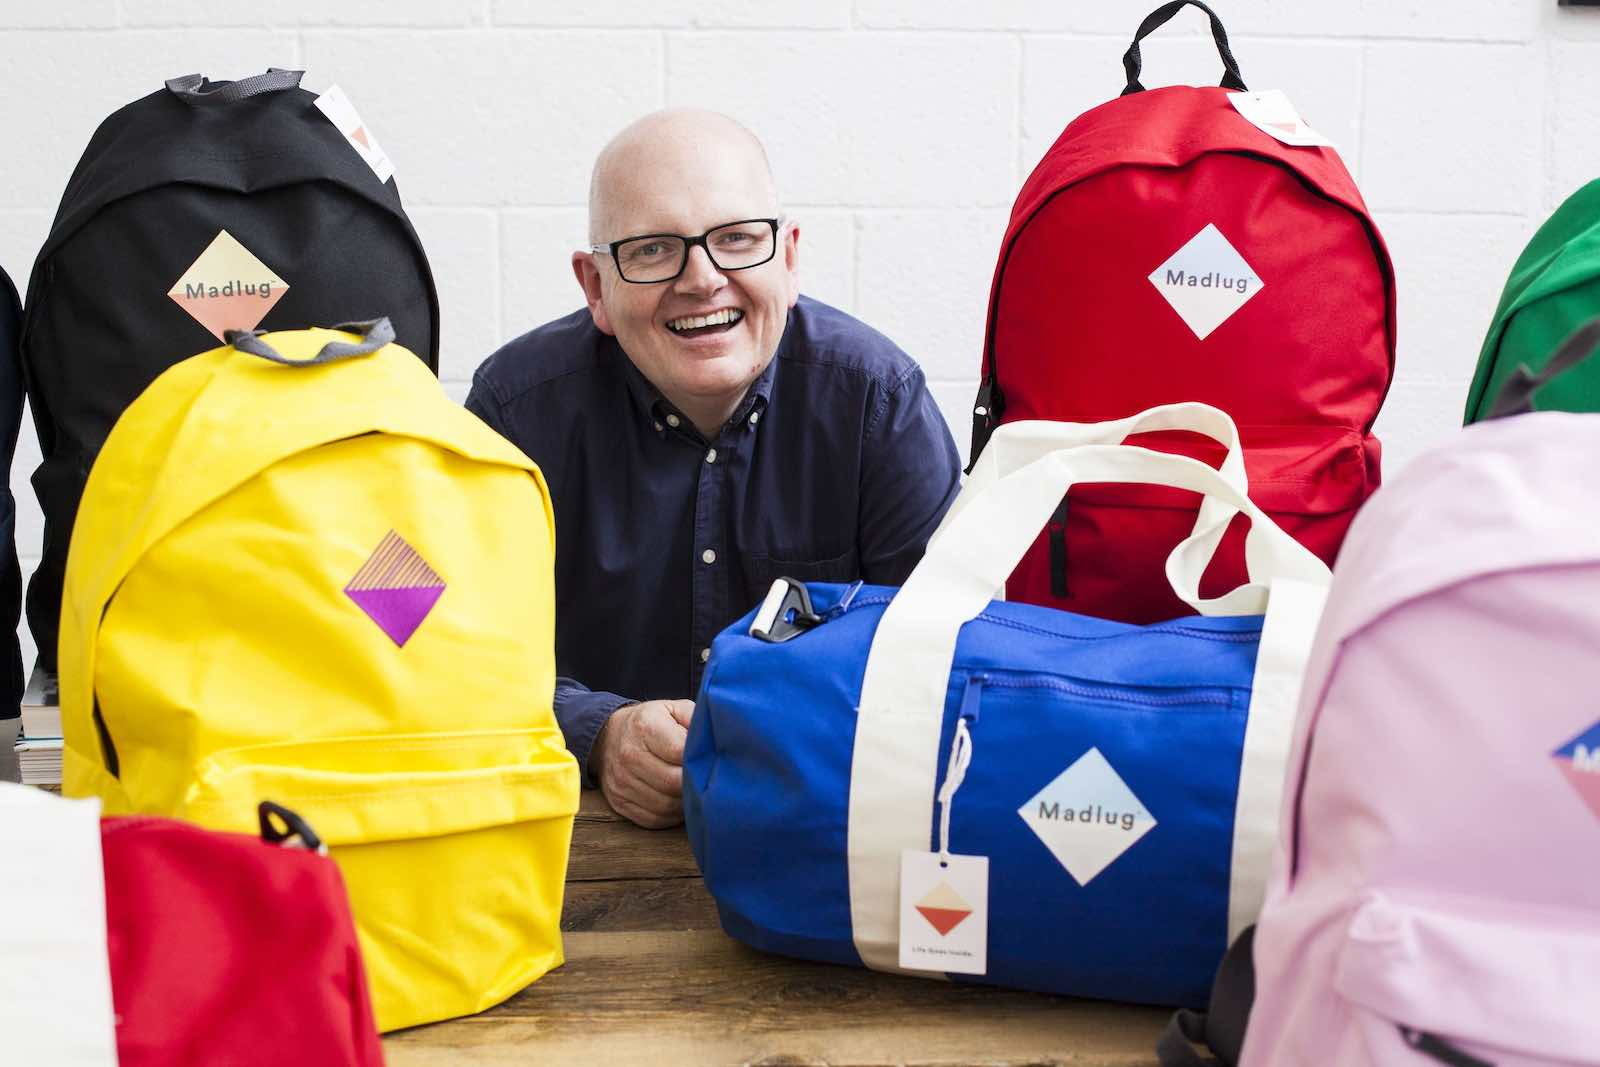 Madlug founder Dave shows off his bags. He donates one to a child in foster care for every one he sells.